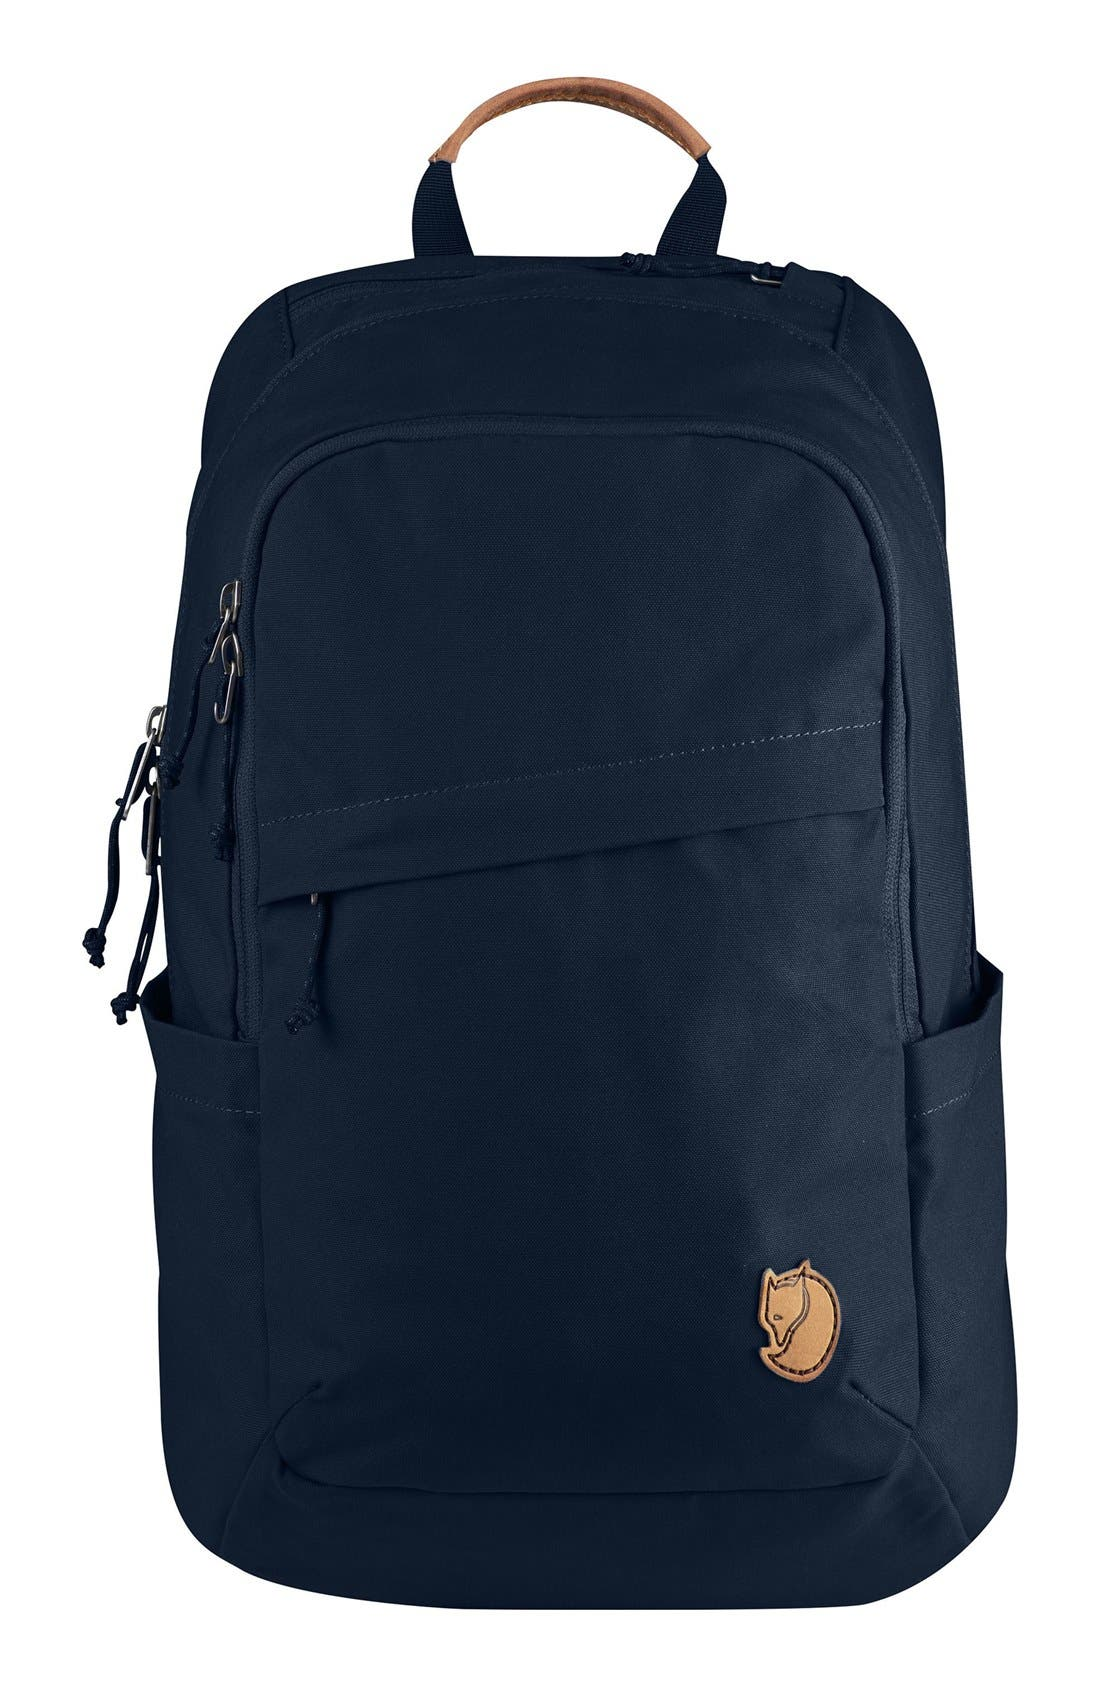 'Raven 20L' Backpack,                             Main thumbnail 1, color,                             Navy